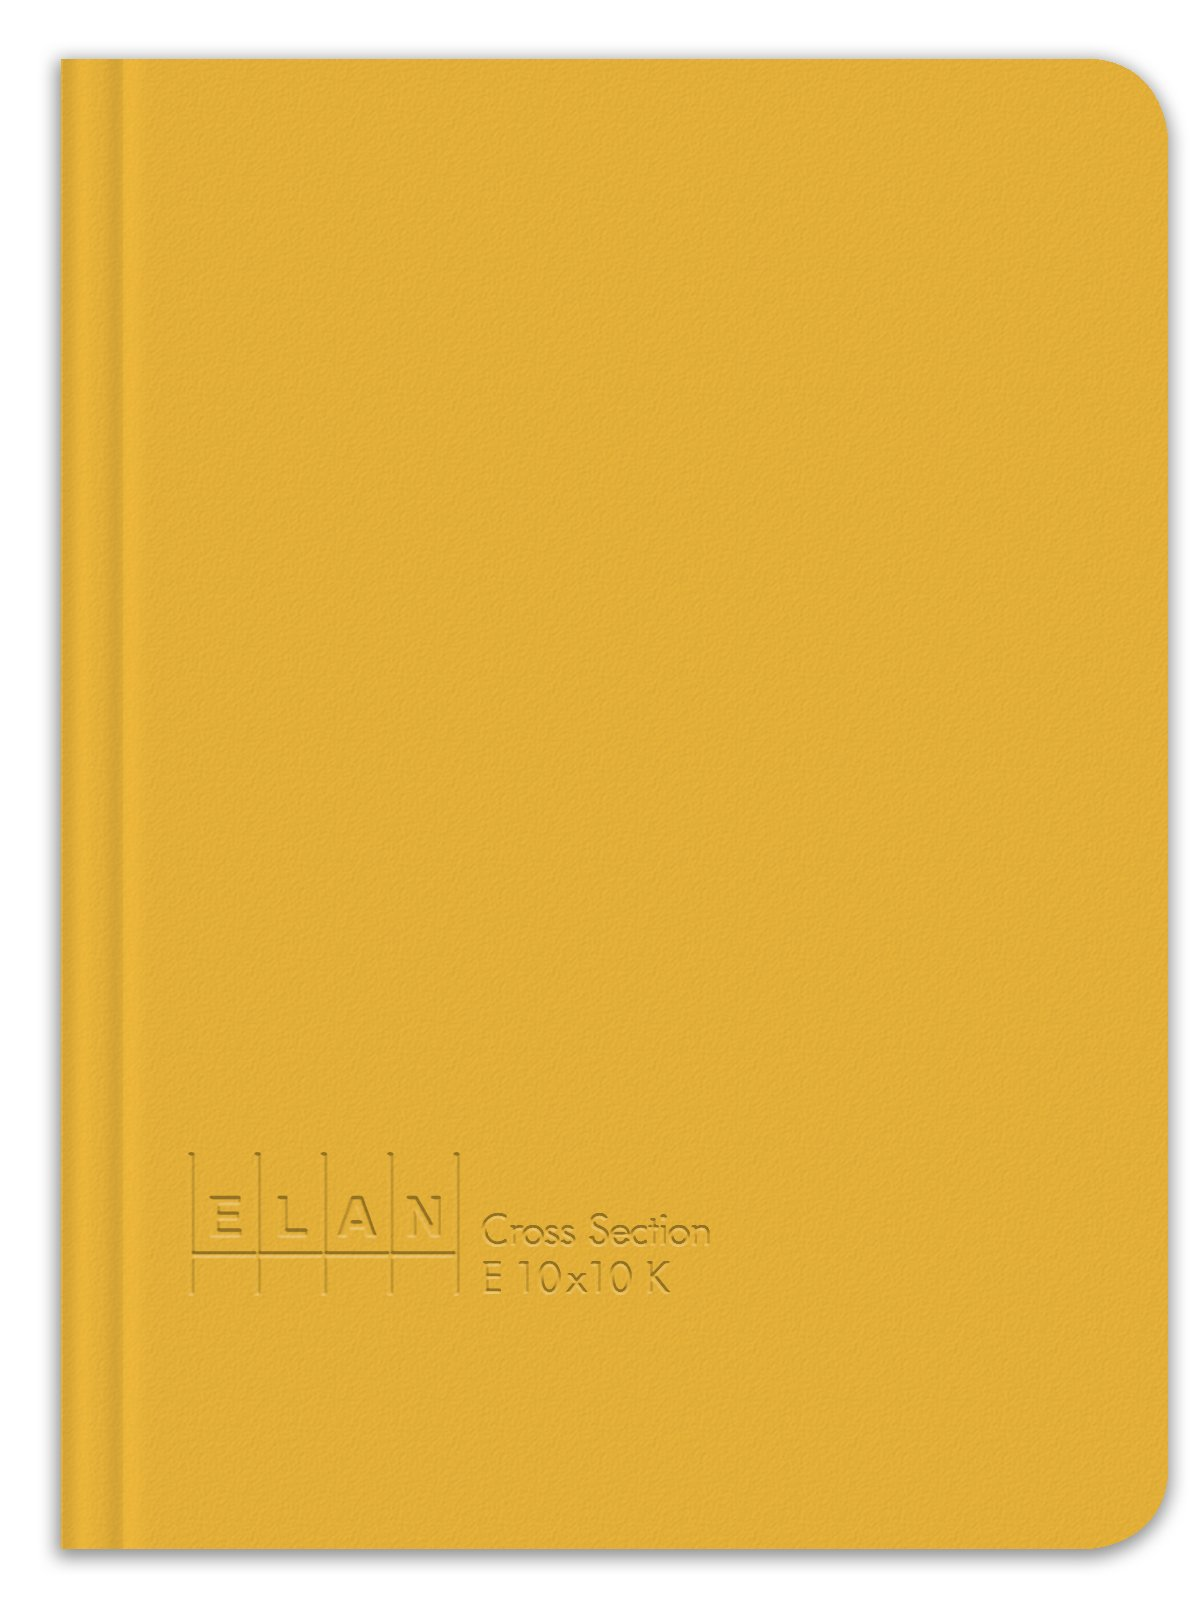 Elan Publishing Company E10x10K King Size Cross Section Book 6 ½ x 8 ½, Yellow Cover (Pack of 12)